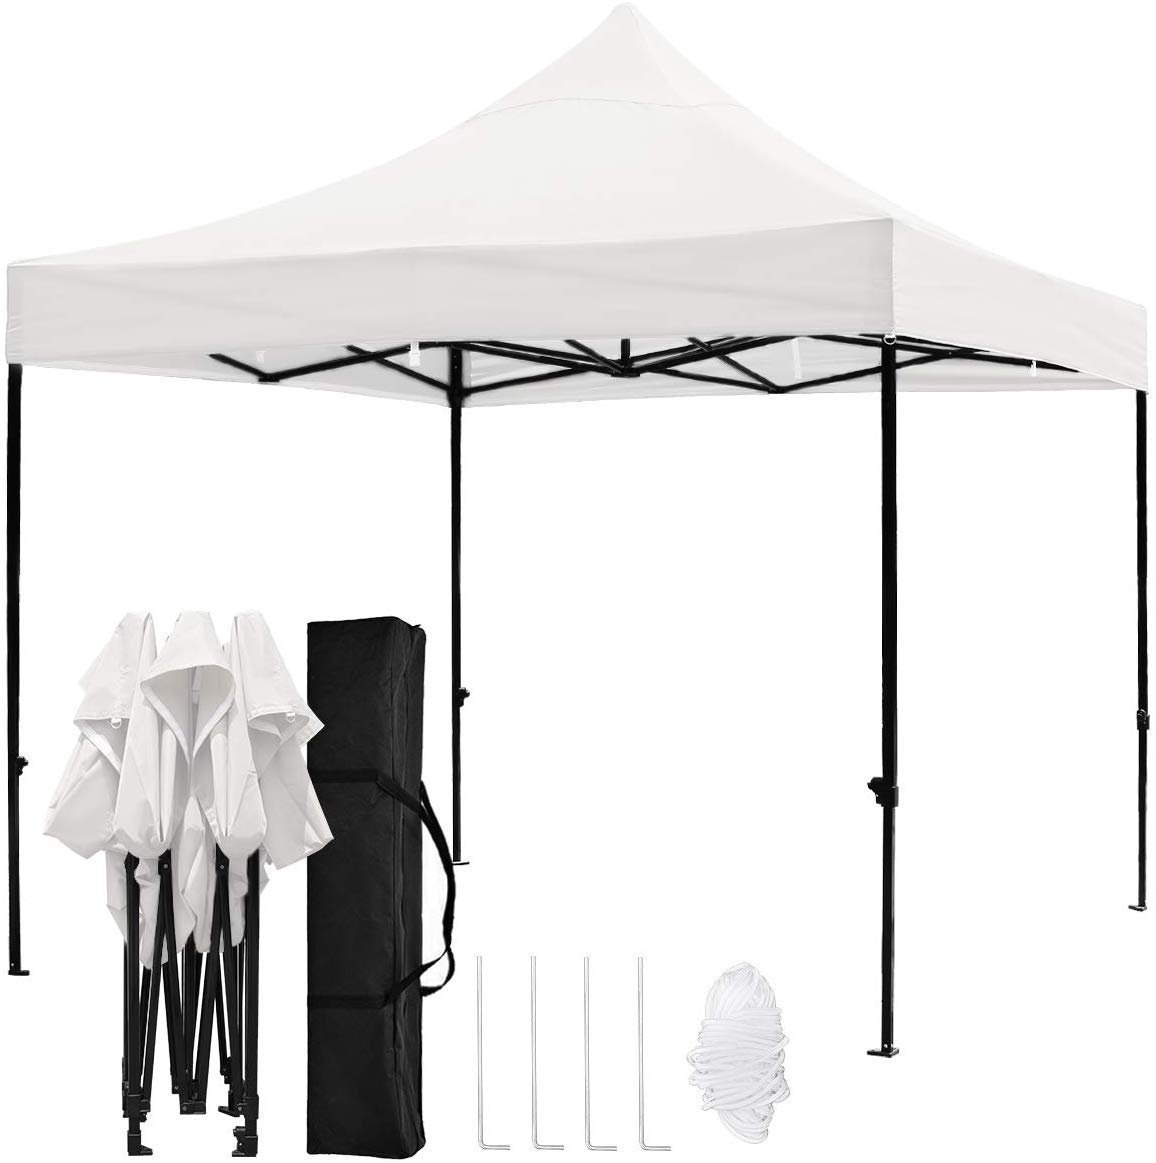 kdgarden 10 x10 Outdoor Easy Pop Up Canopy with 420D Waterproof and UV-Treated Top, Portable Party Shelter Tent with Carrying Bag, White